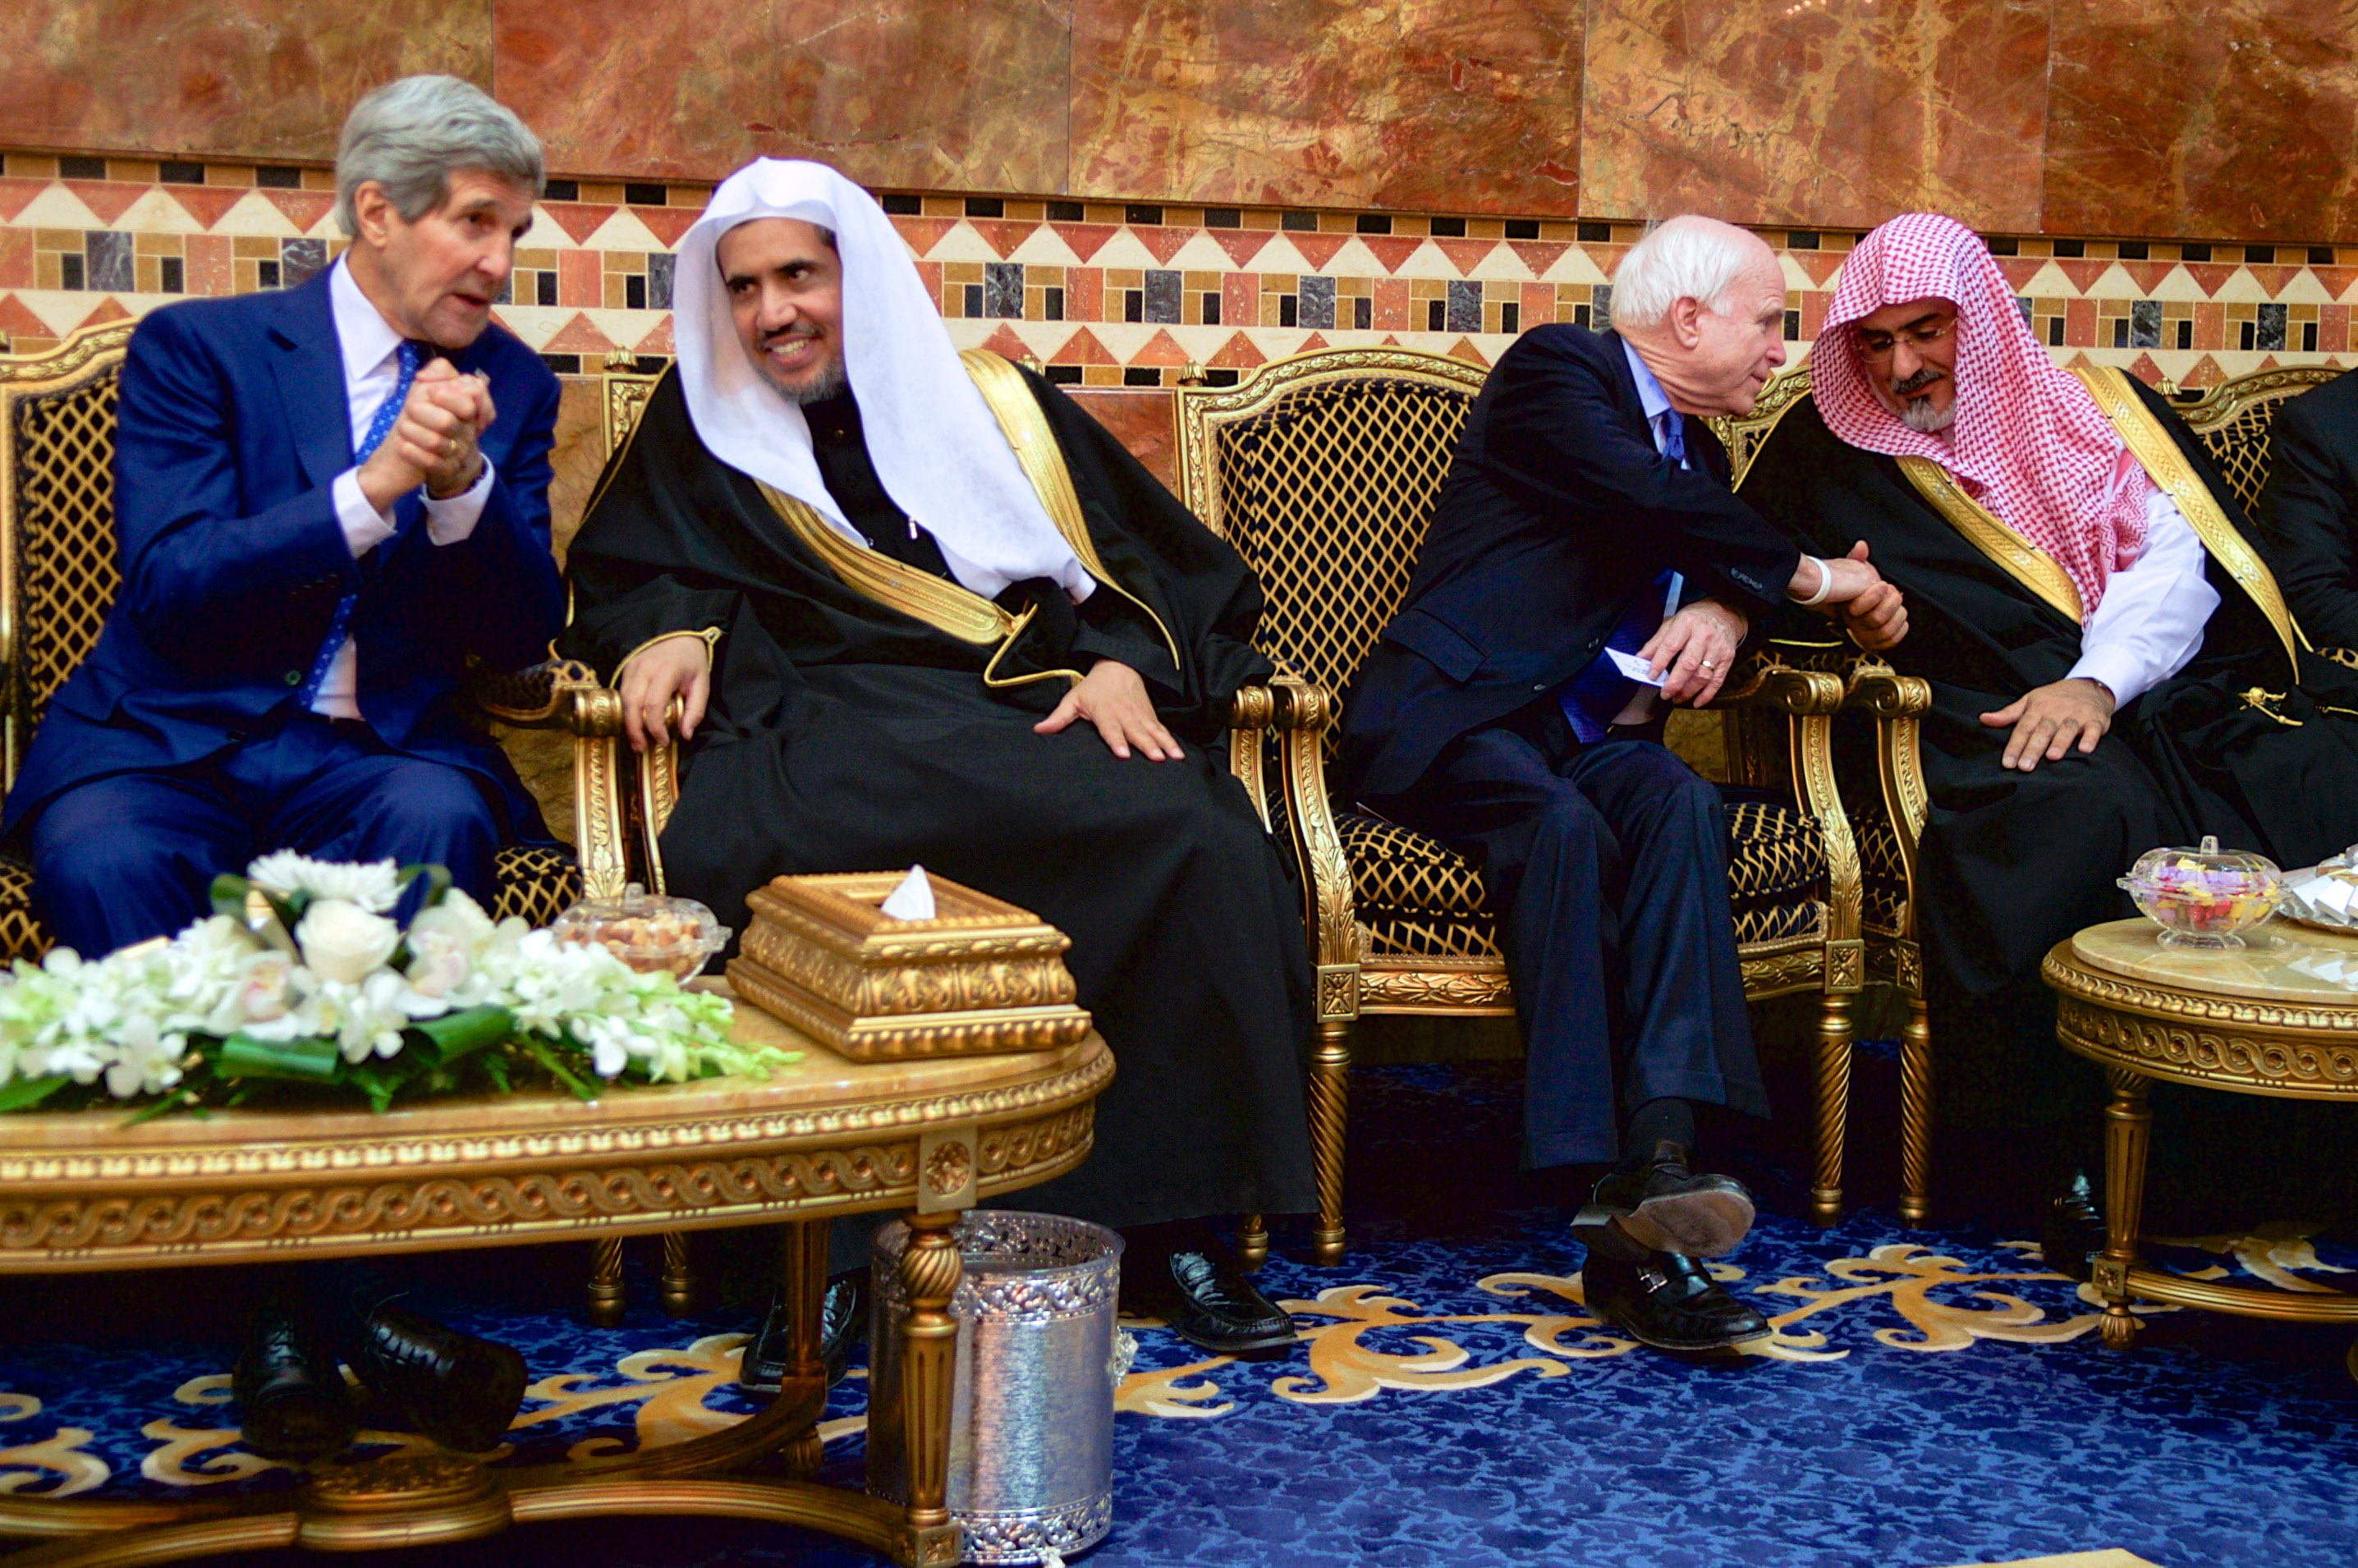 Secretary_Kerry_and_Senator_McCain_Chat_With_Members_of_the_Saudi_Royal_Family